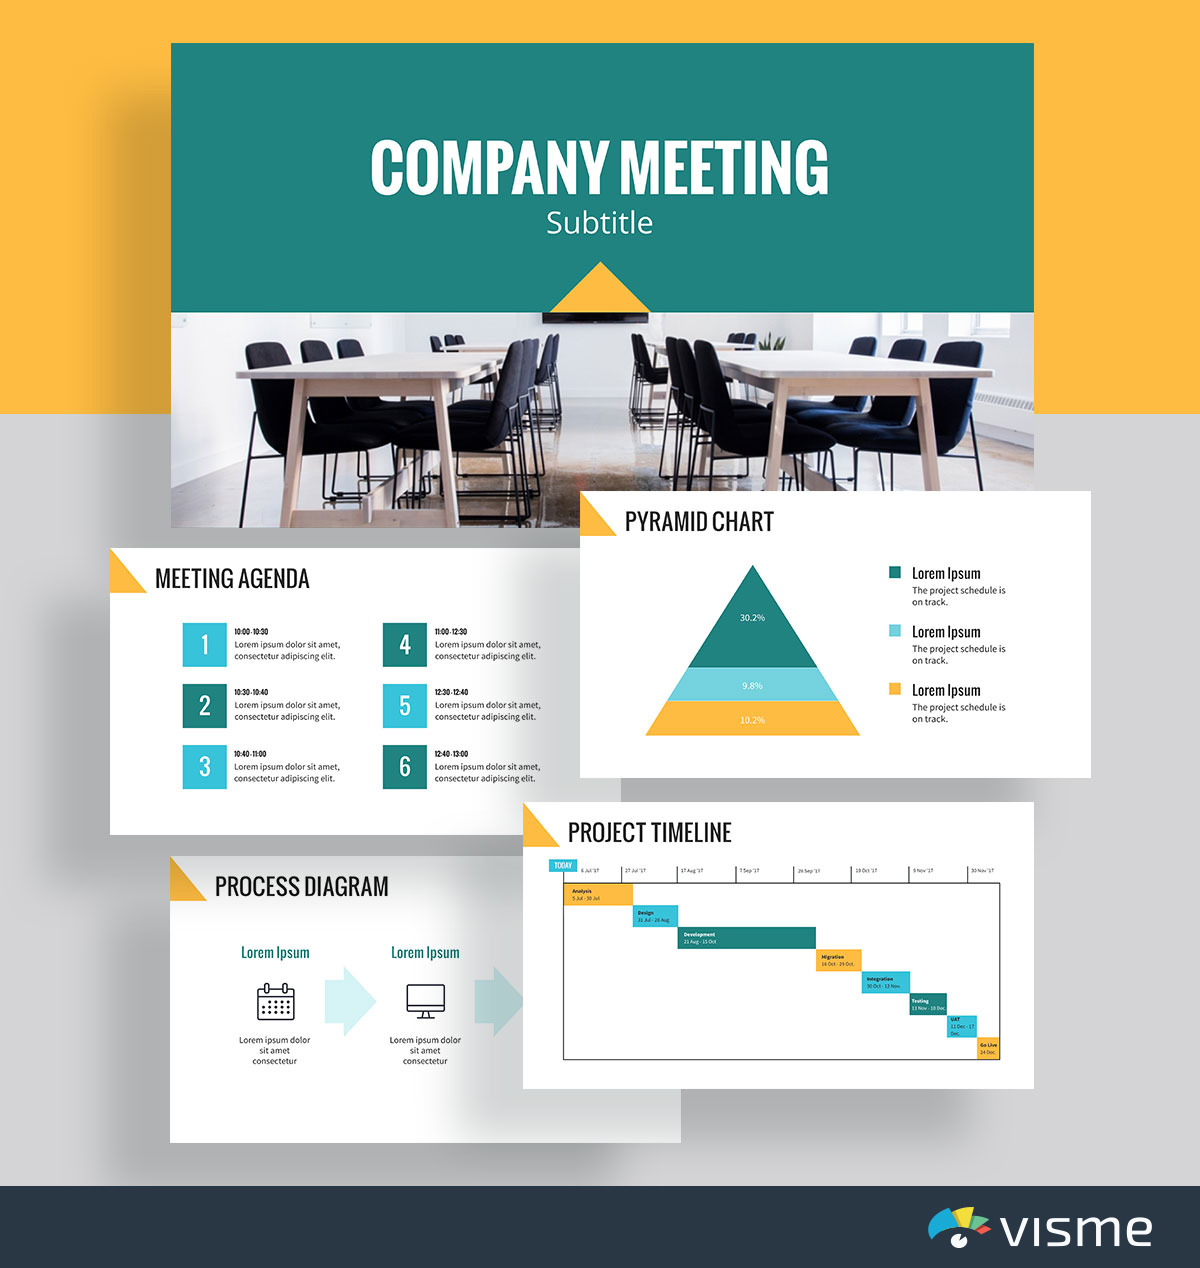 presentation slides - meeting agenda template visme